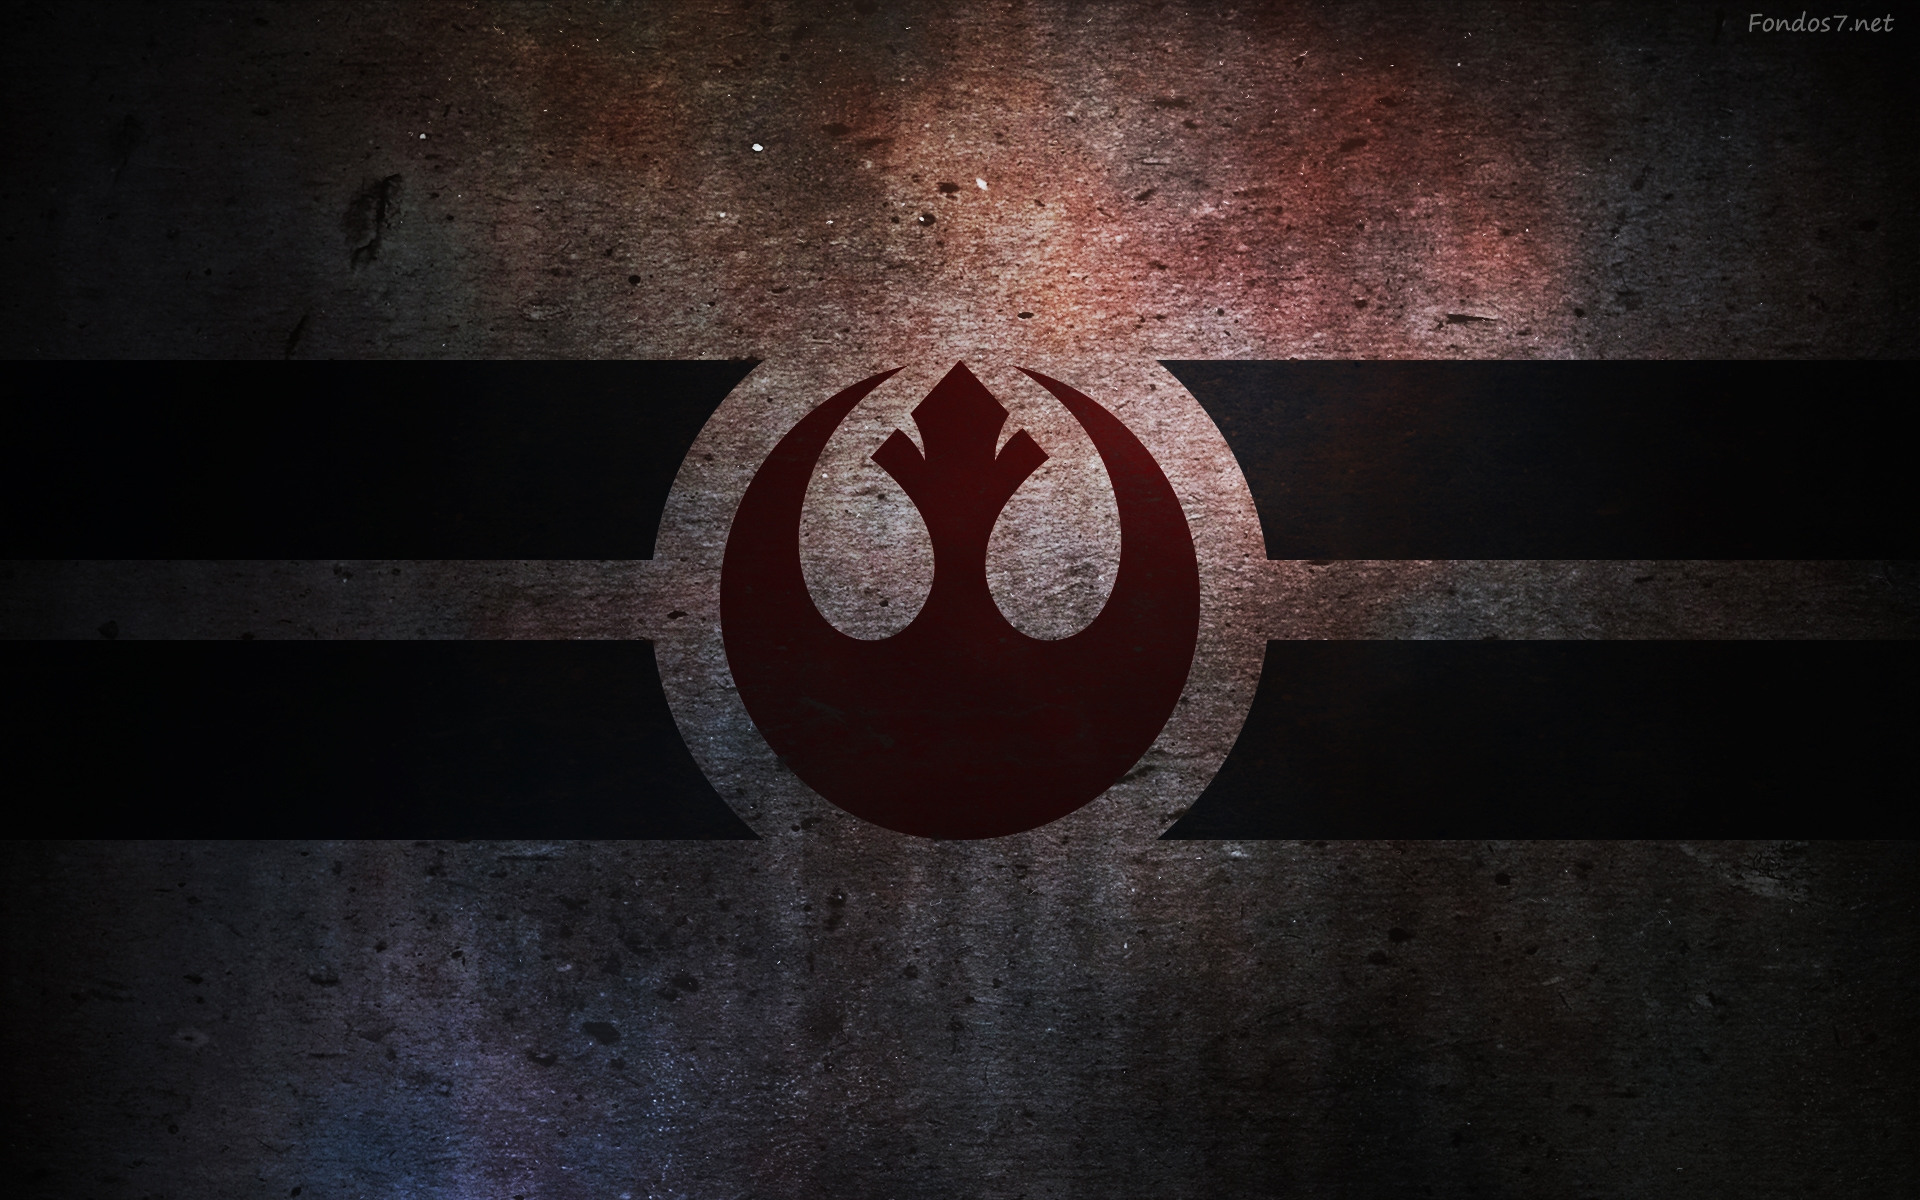 Star Wars The Force Awakens What We Know 1920x1200